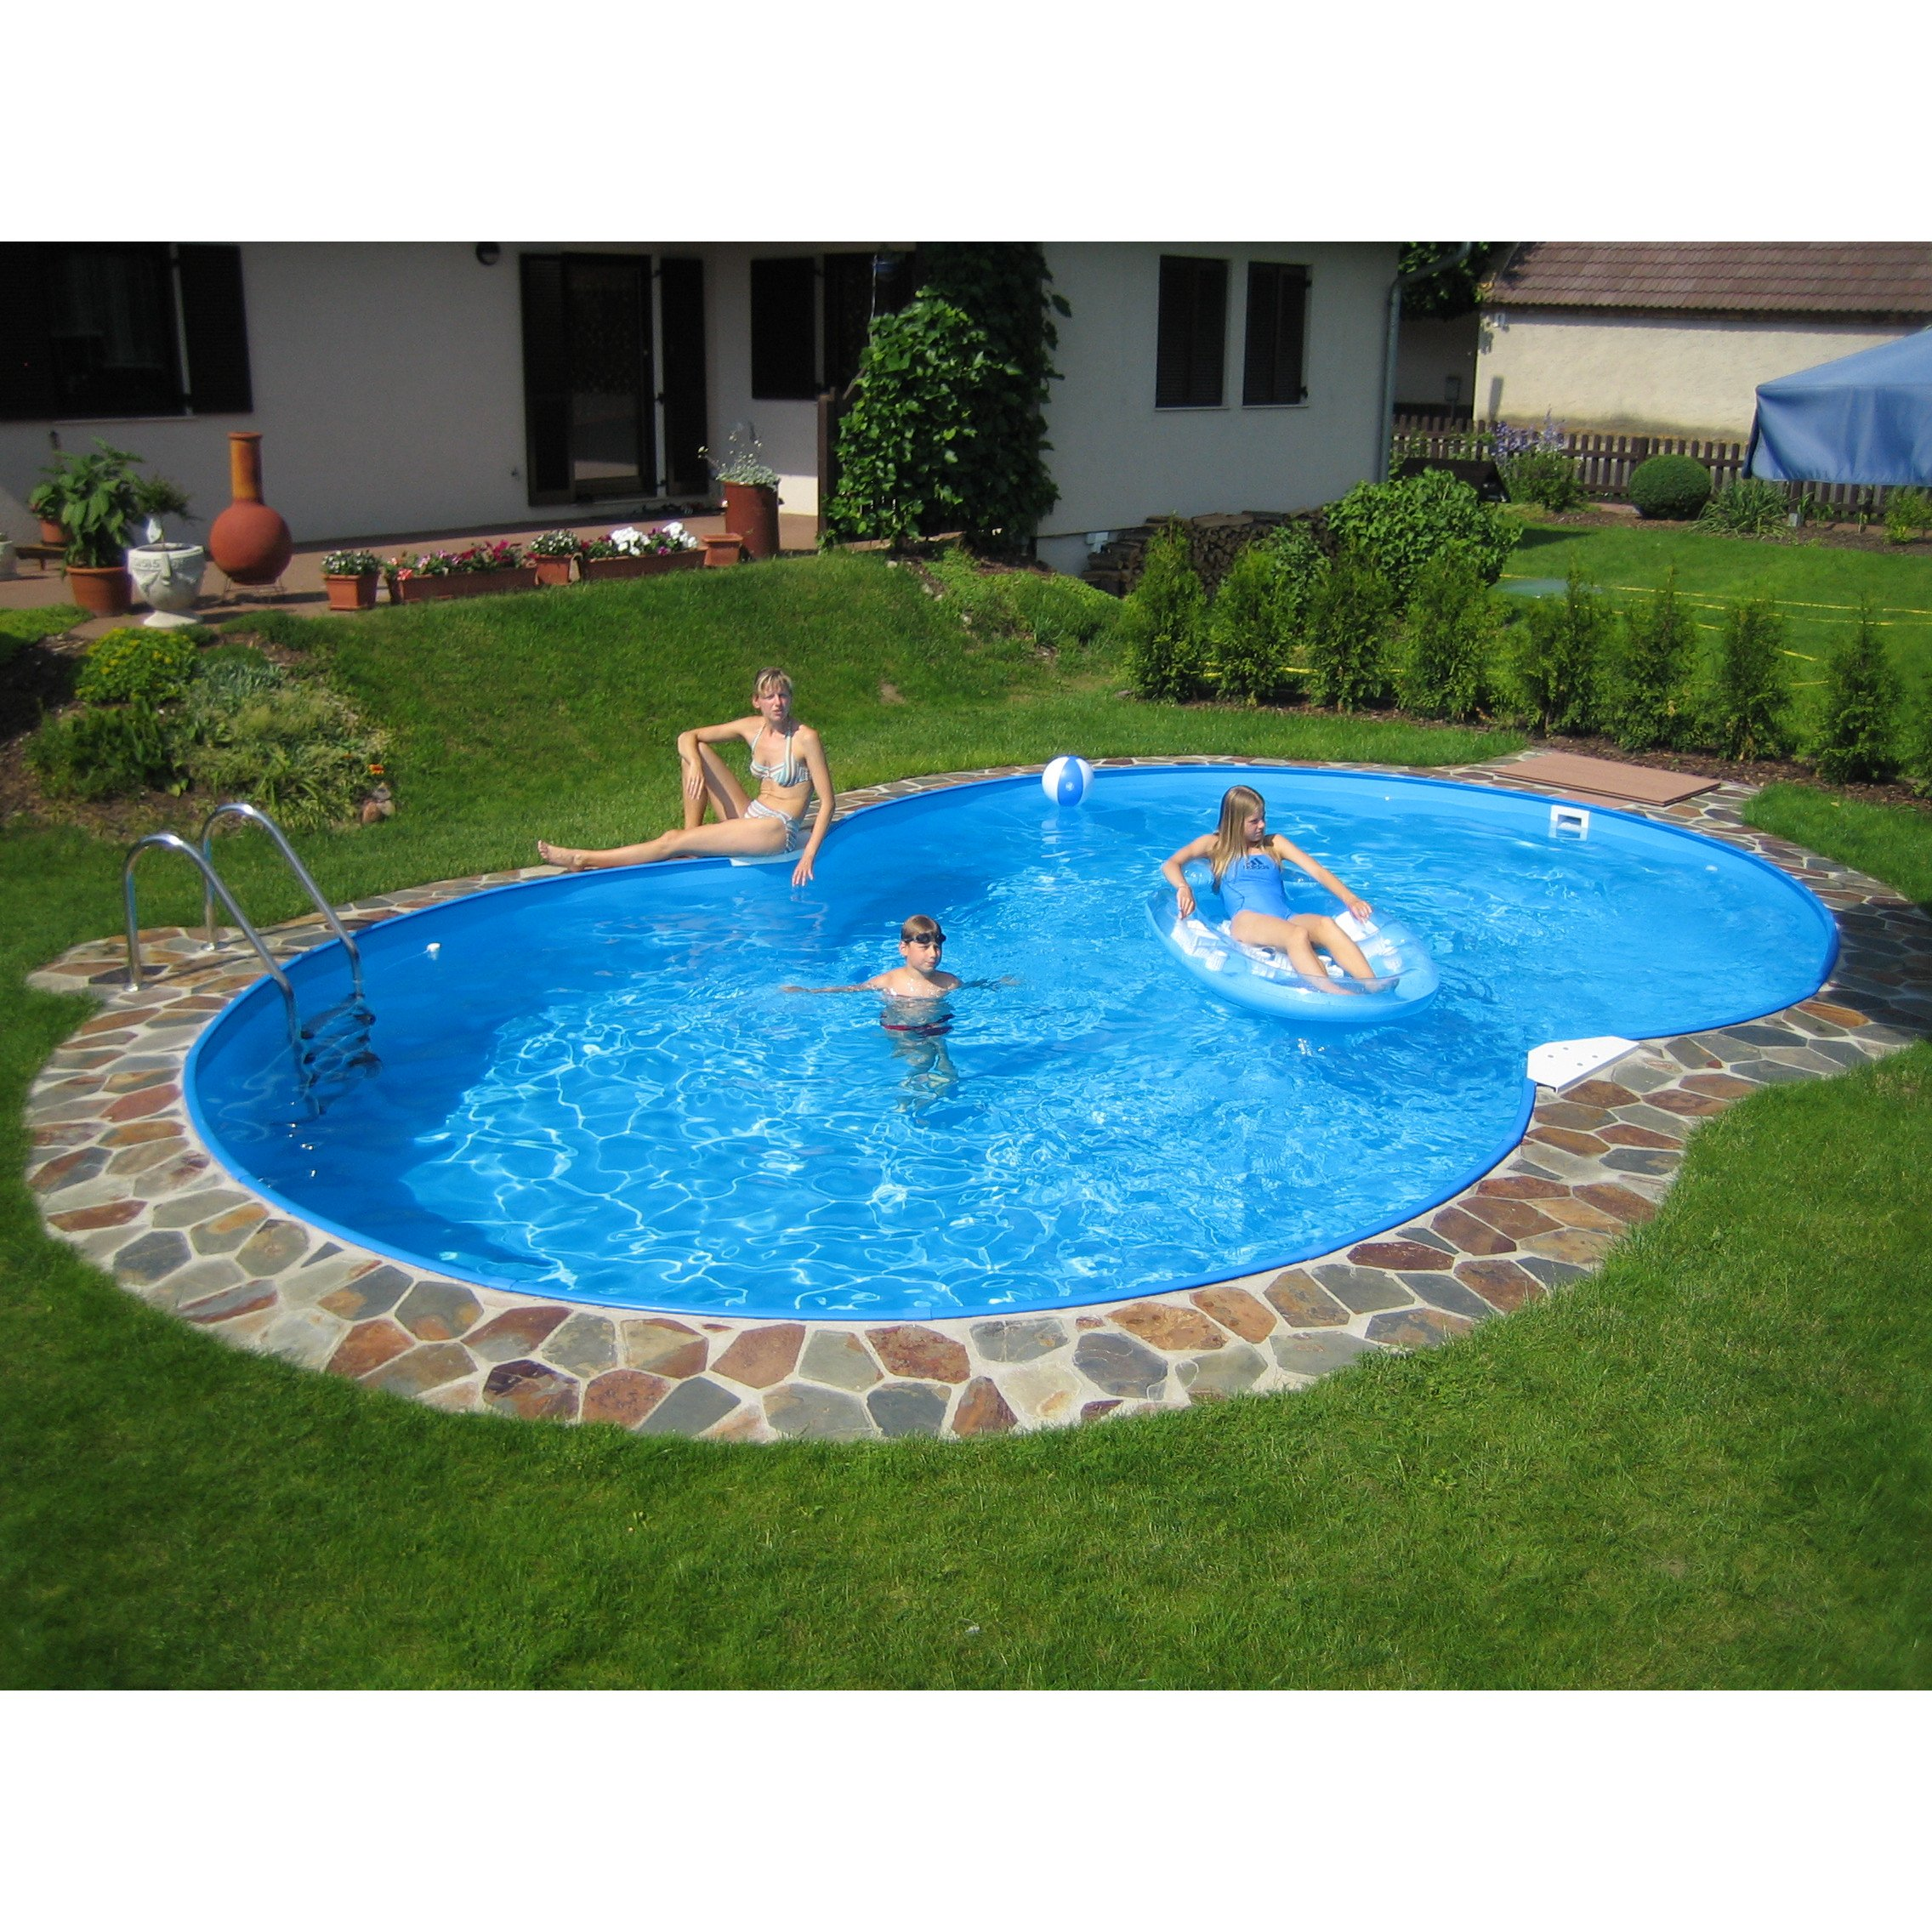 Family achtform pool 525 x 320 x 150 cm for Pool stahlwand